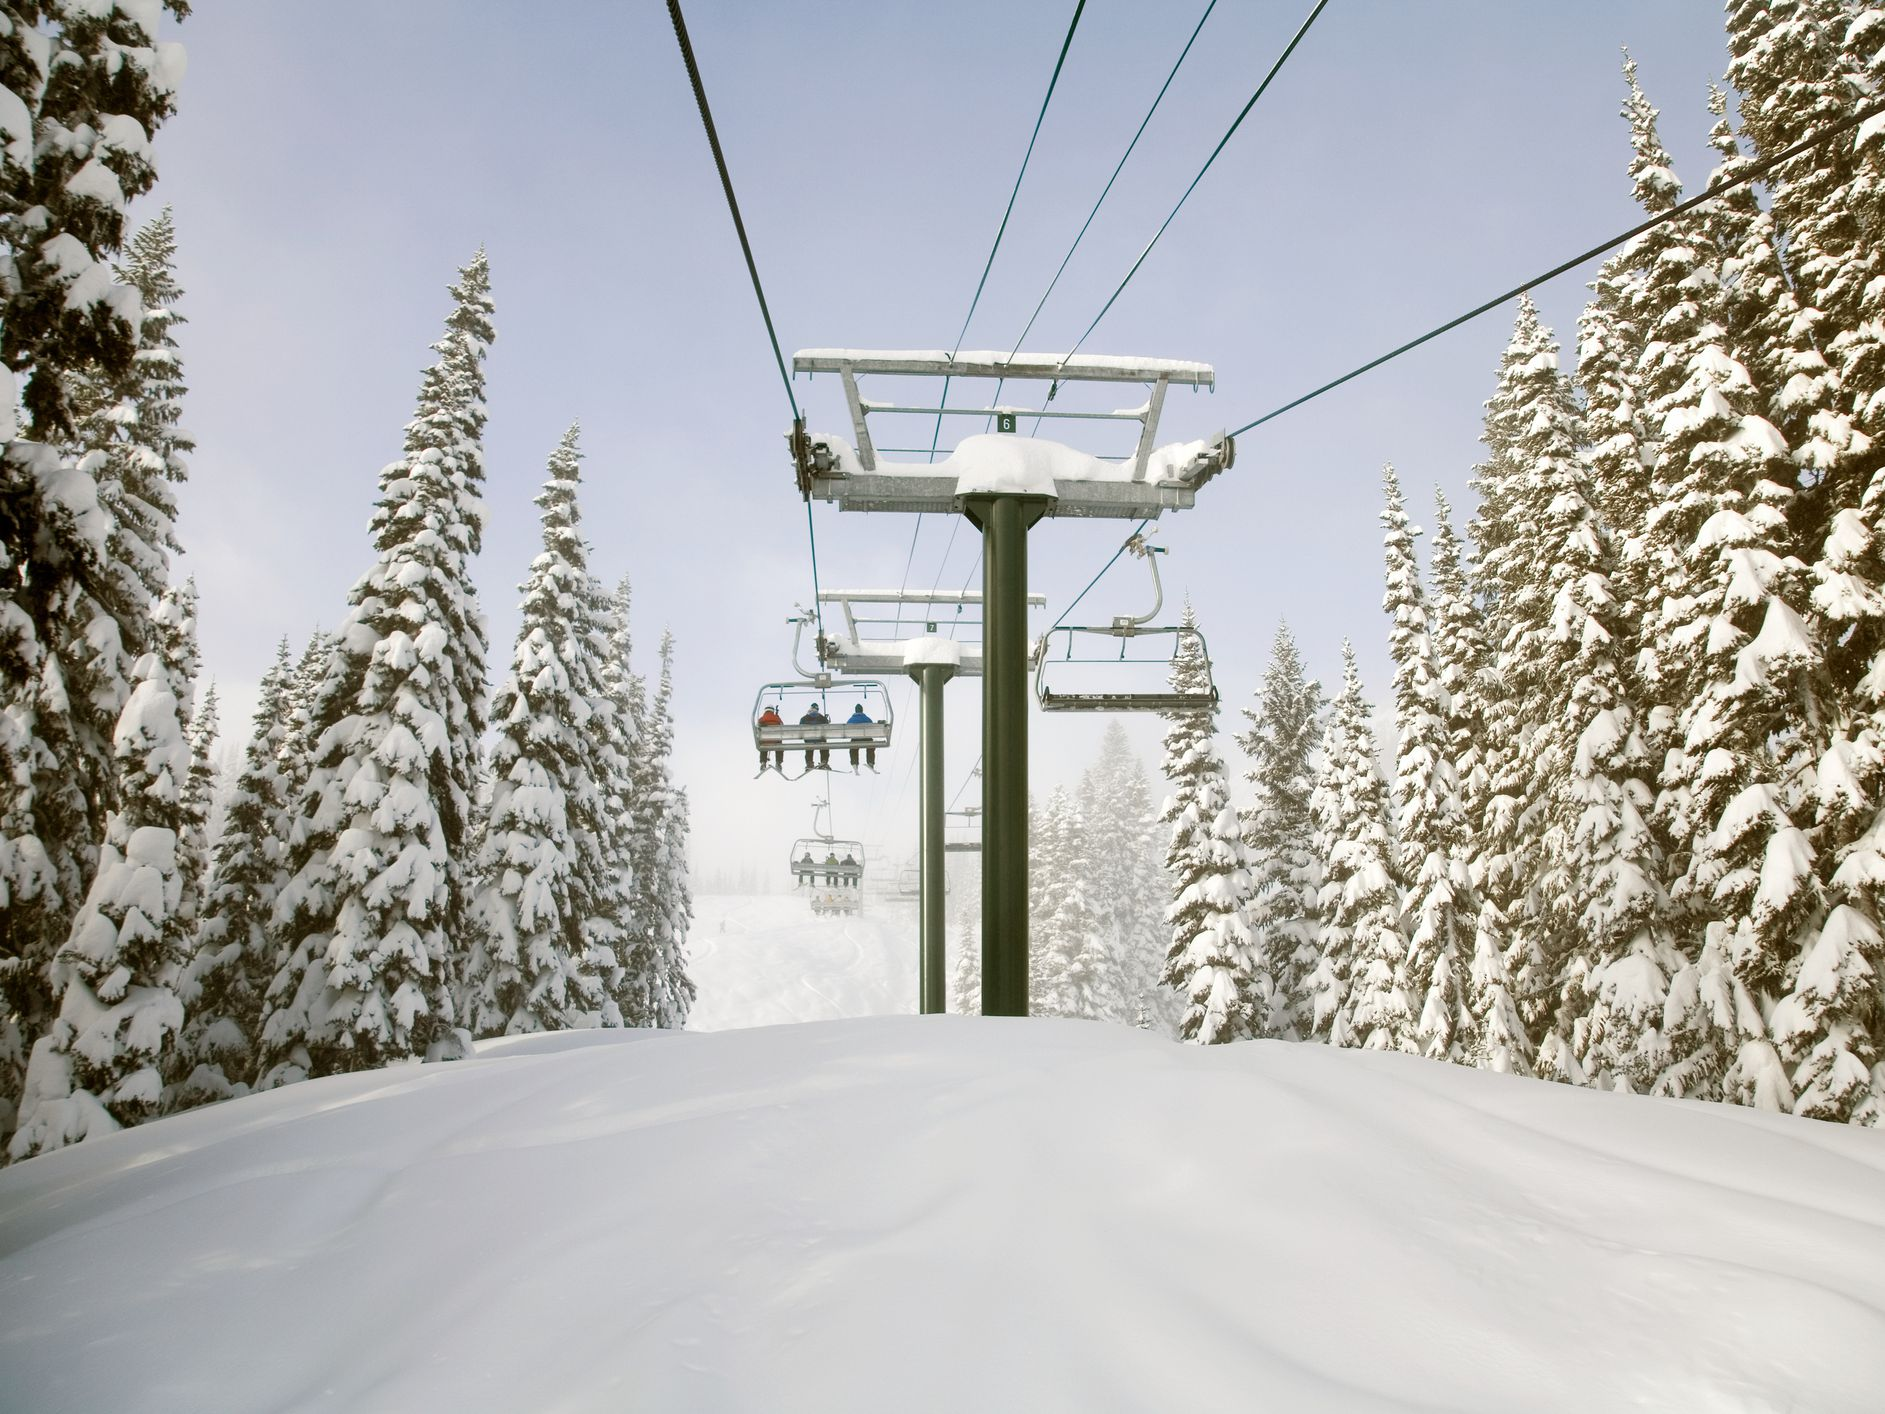 The 7 Biggest Ski Resorts in Washington State [With a Map] Skiing Washington State Map on washington snow map, washington mountains map, oregon washington idaho map, washington caves map, washington yakima valley wineries map, washington weather map, washington sports map, washington business map, washington ski areas, washington park map, washington hiking map, washington hunting map, washington wind farm map, lake washington map, washington wine country map, washington cycling map, washington art map, washington rockhounding map, washington golf map, washington attractions map,